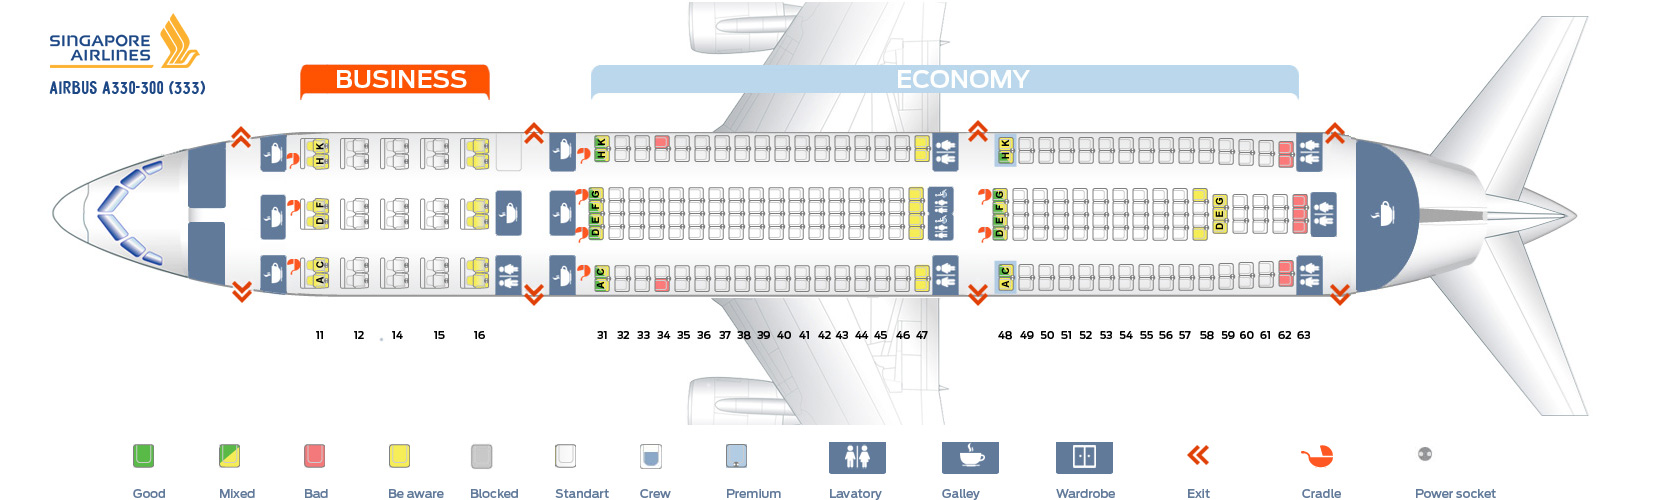 Seat map Airbus A330-300 Singapore Airlines. Best seats in plane